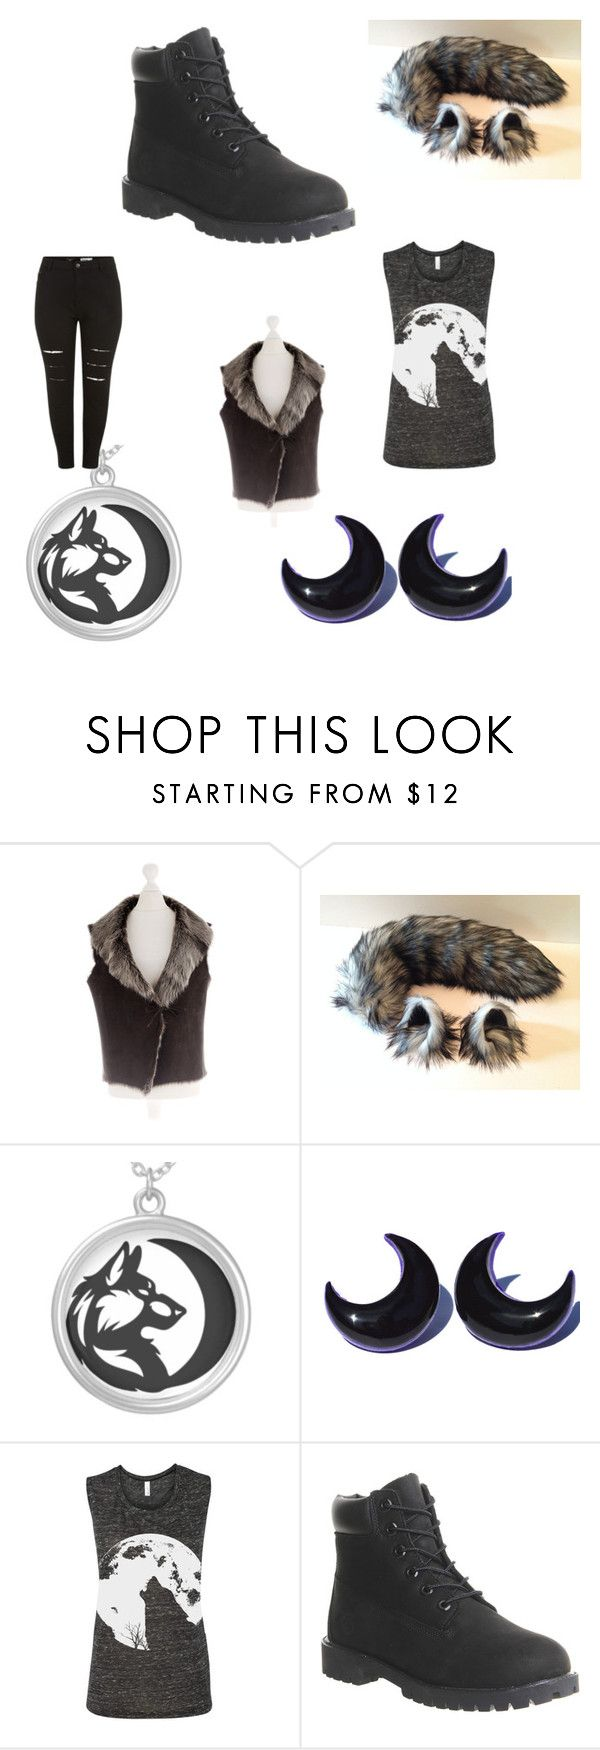 """""""were-wolf - halloween costume #11"""" by rainy-kat ❤ liked on Polyvore featuring Timberland, women's clothing, women's fashion, women, female, woman, misses, juniors, Halloween and moon"""